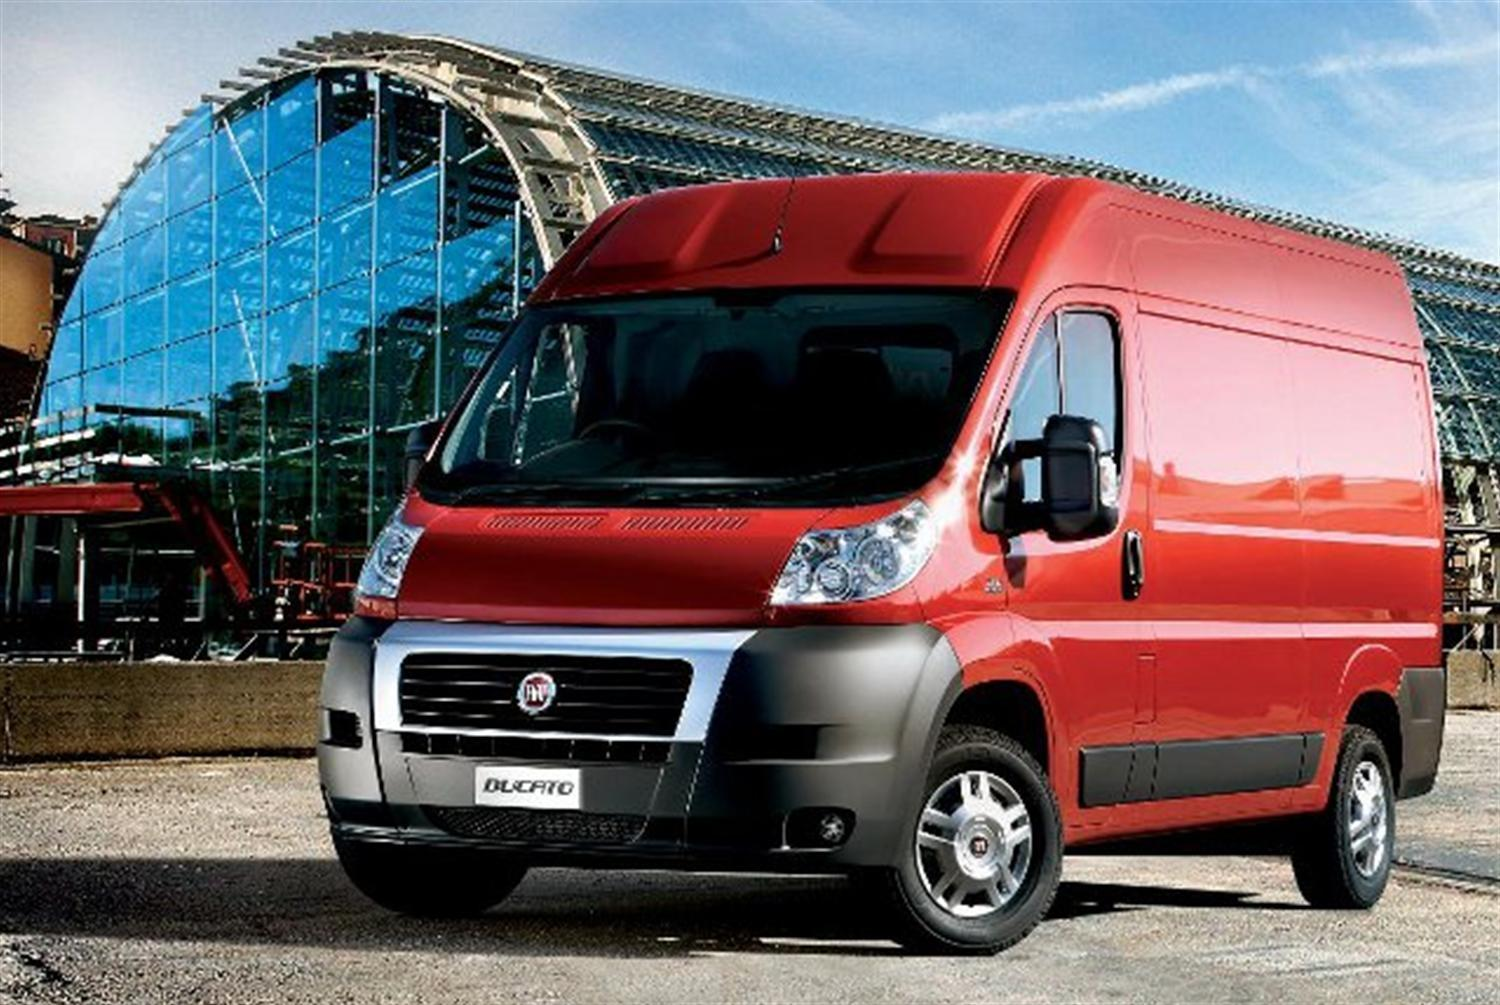 New automatic gearbox for Fiat Ducato